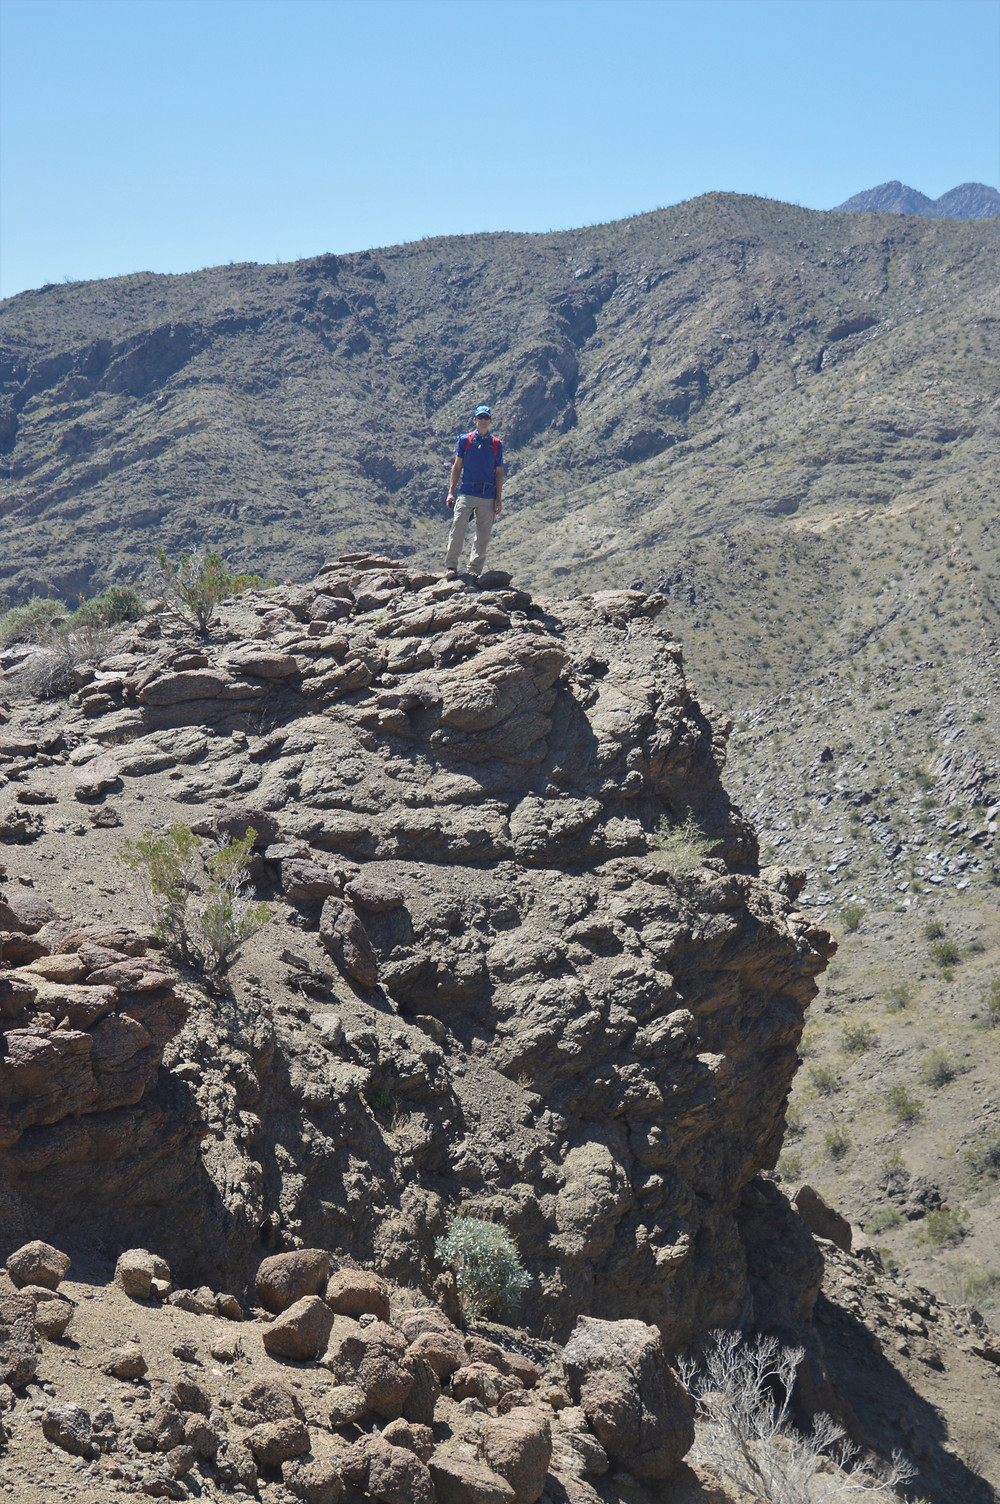 Rock outcropping along Boo Hoof Trail heading to Lost Canyon